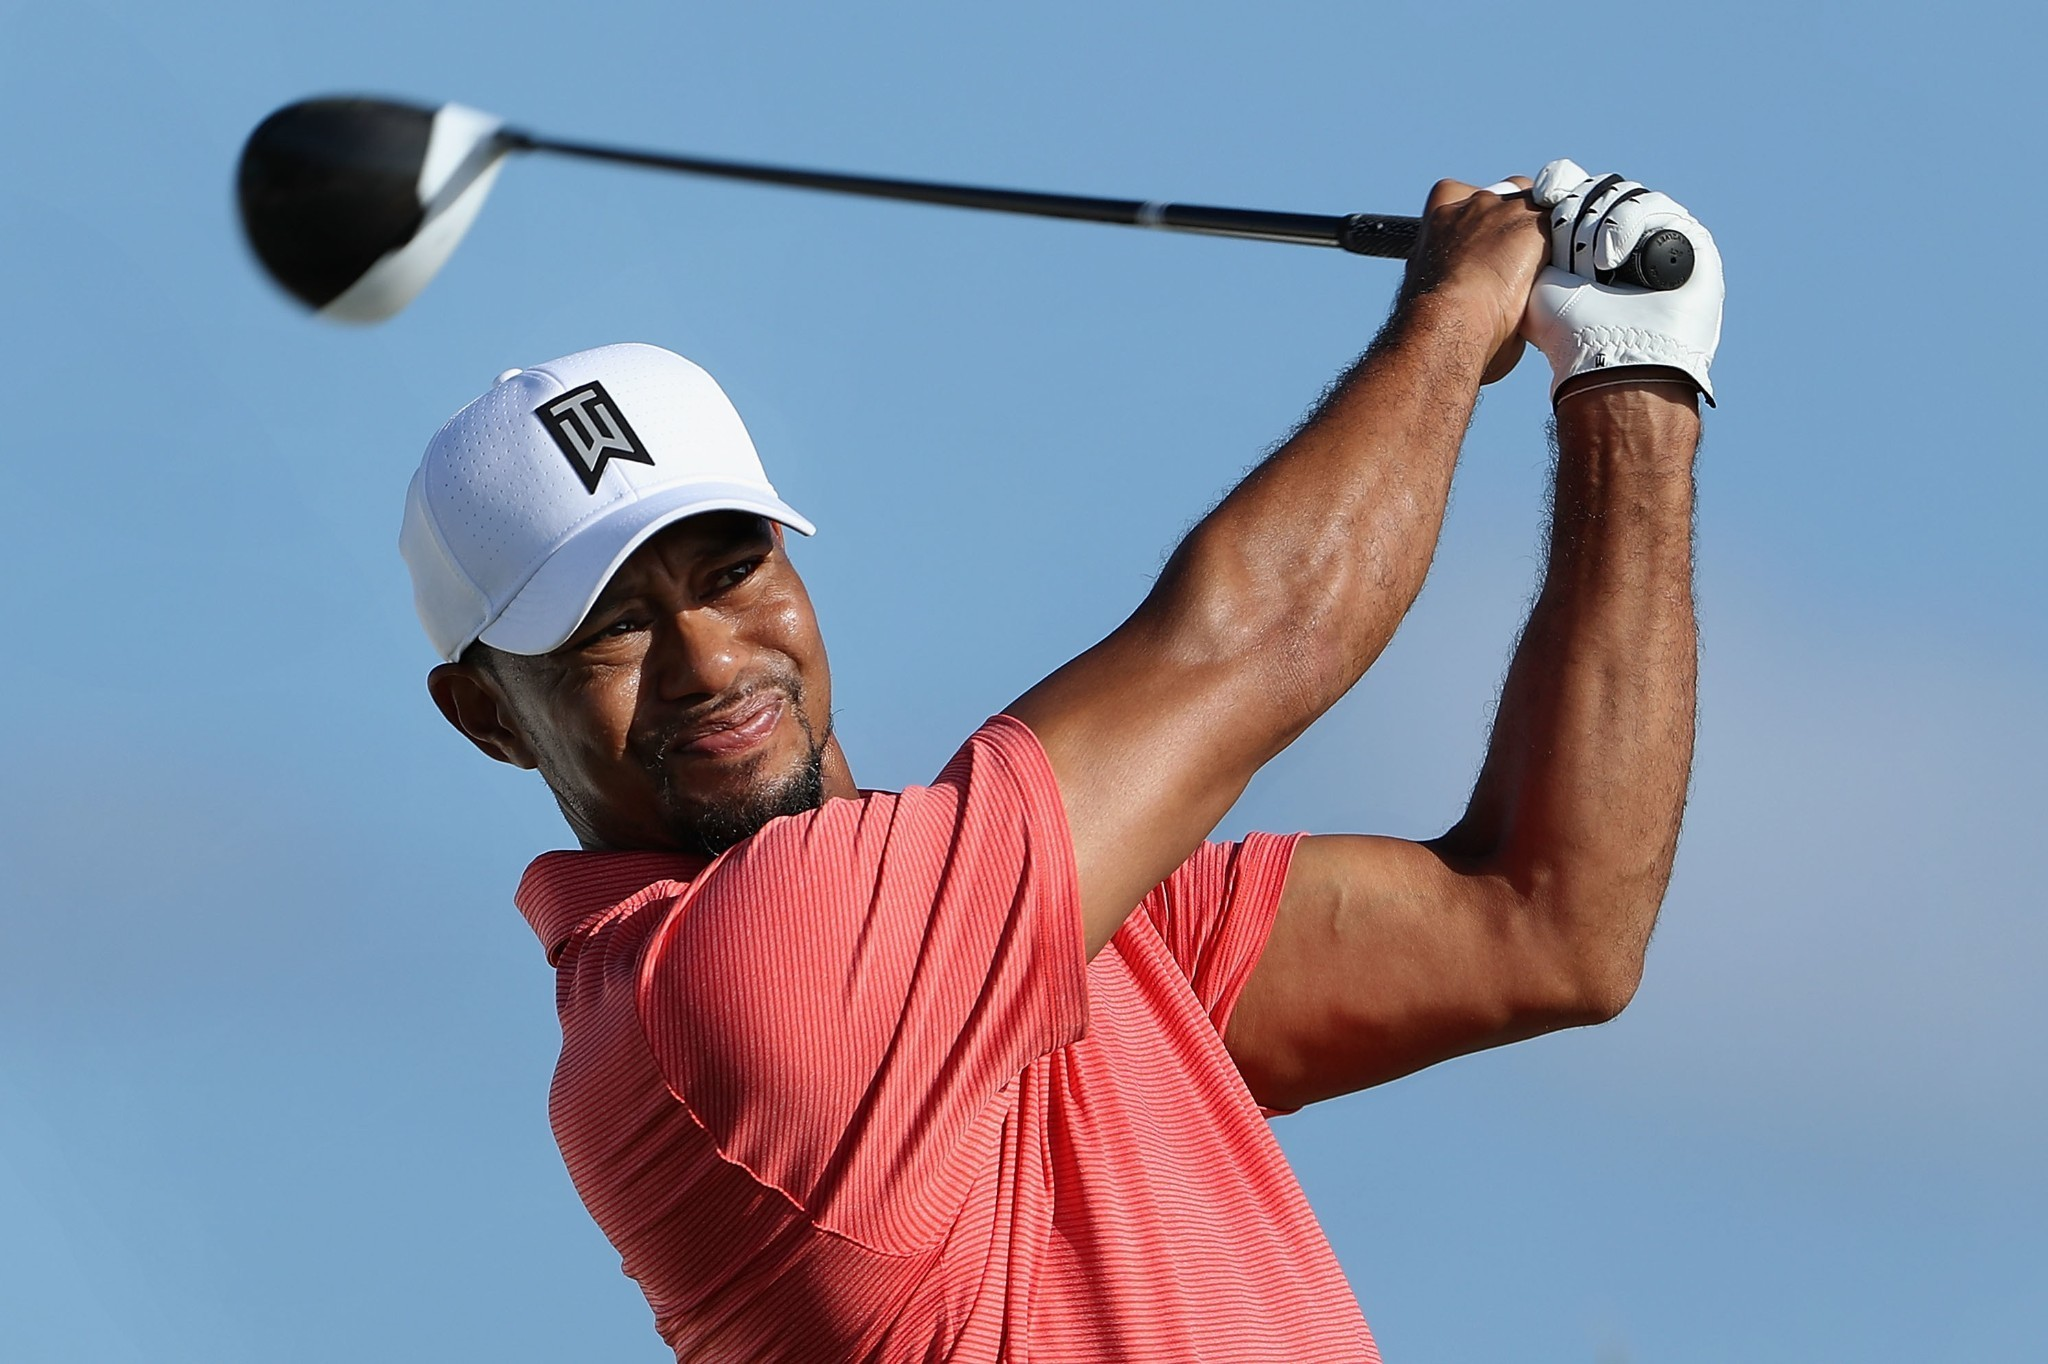 Tiger Woods made some eagles in a pro-am and we're ready to declare he's back